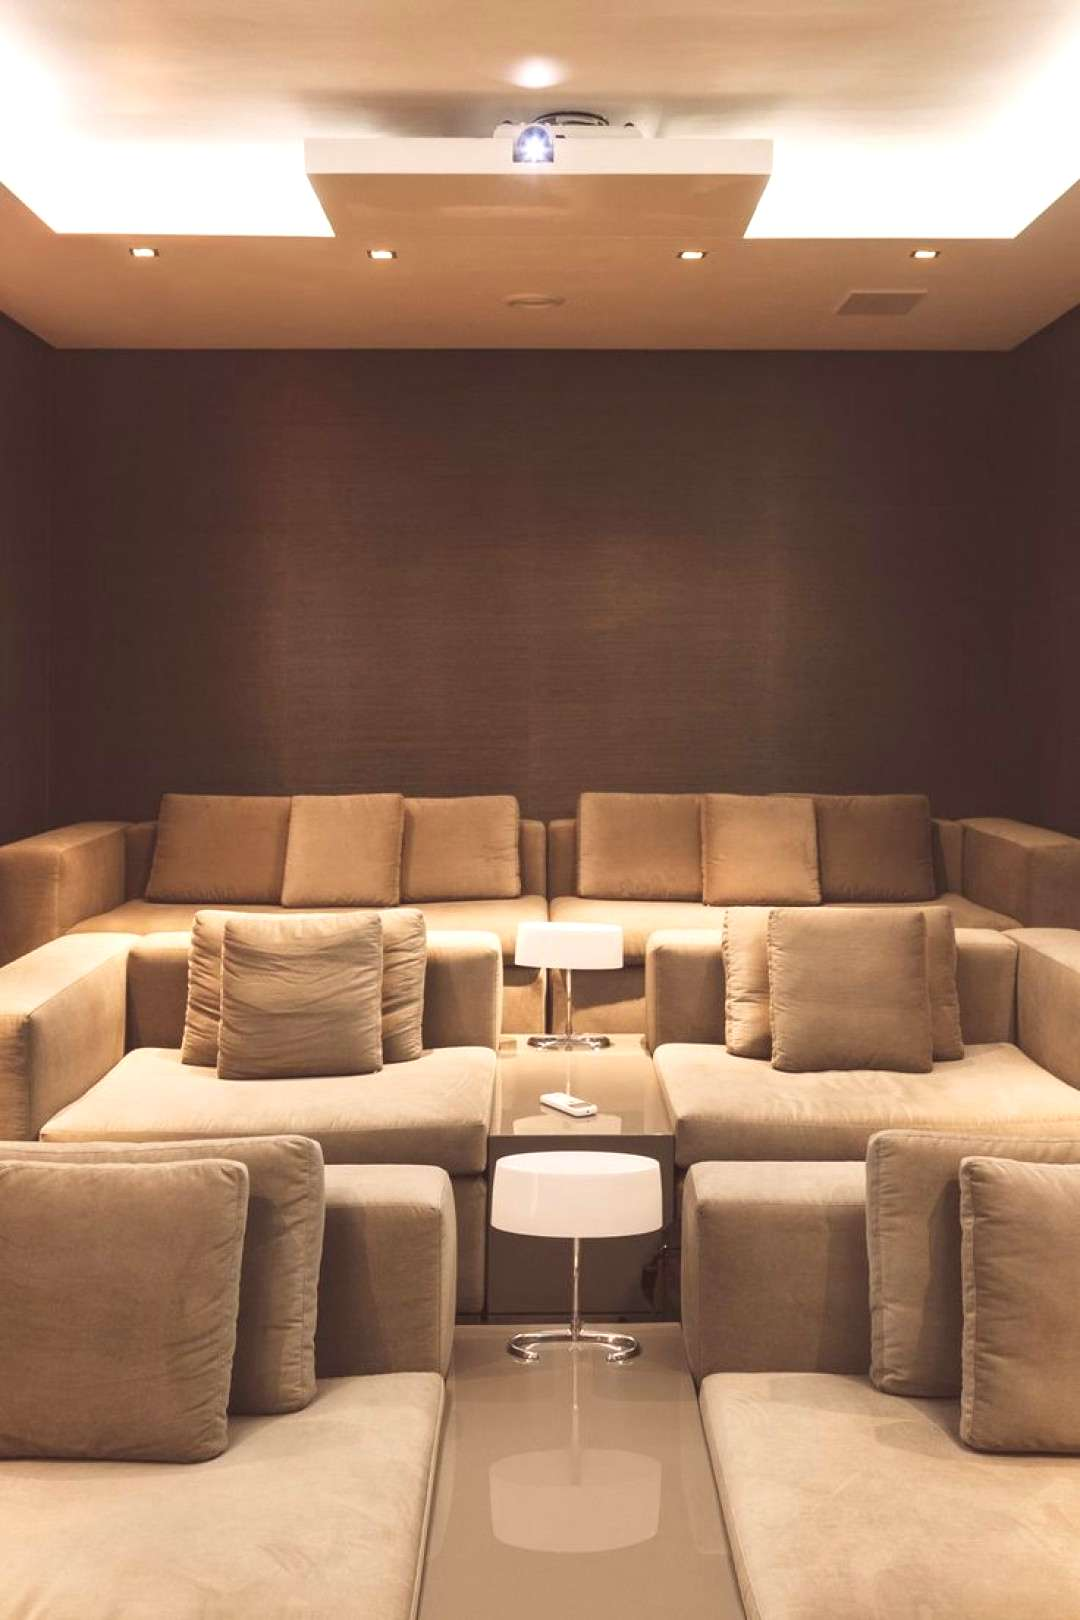 Once youve selected the room you want to use for a home theater, youll want to map out your renov